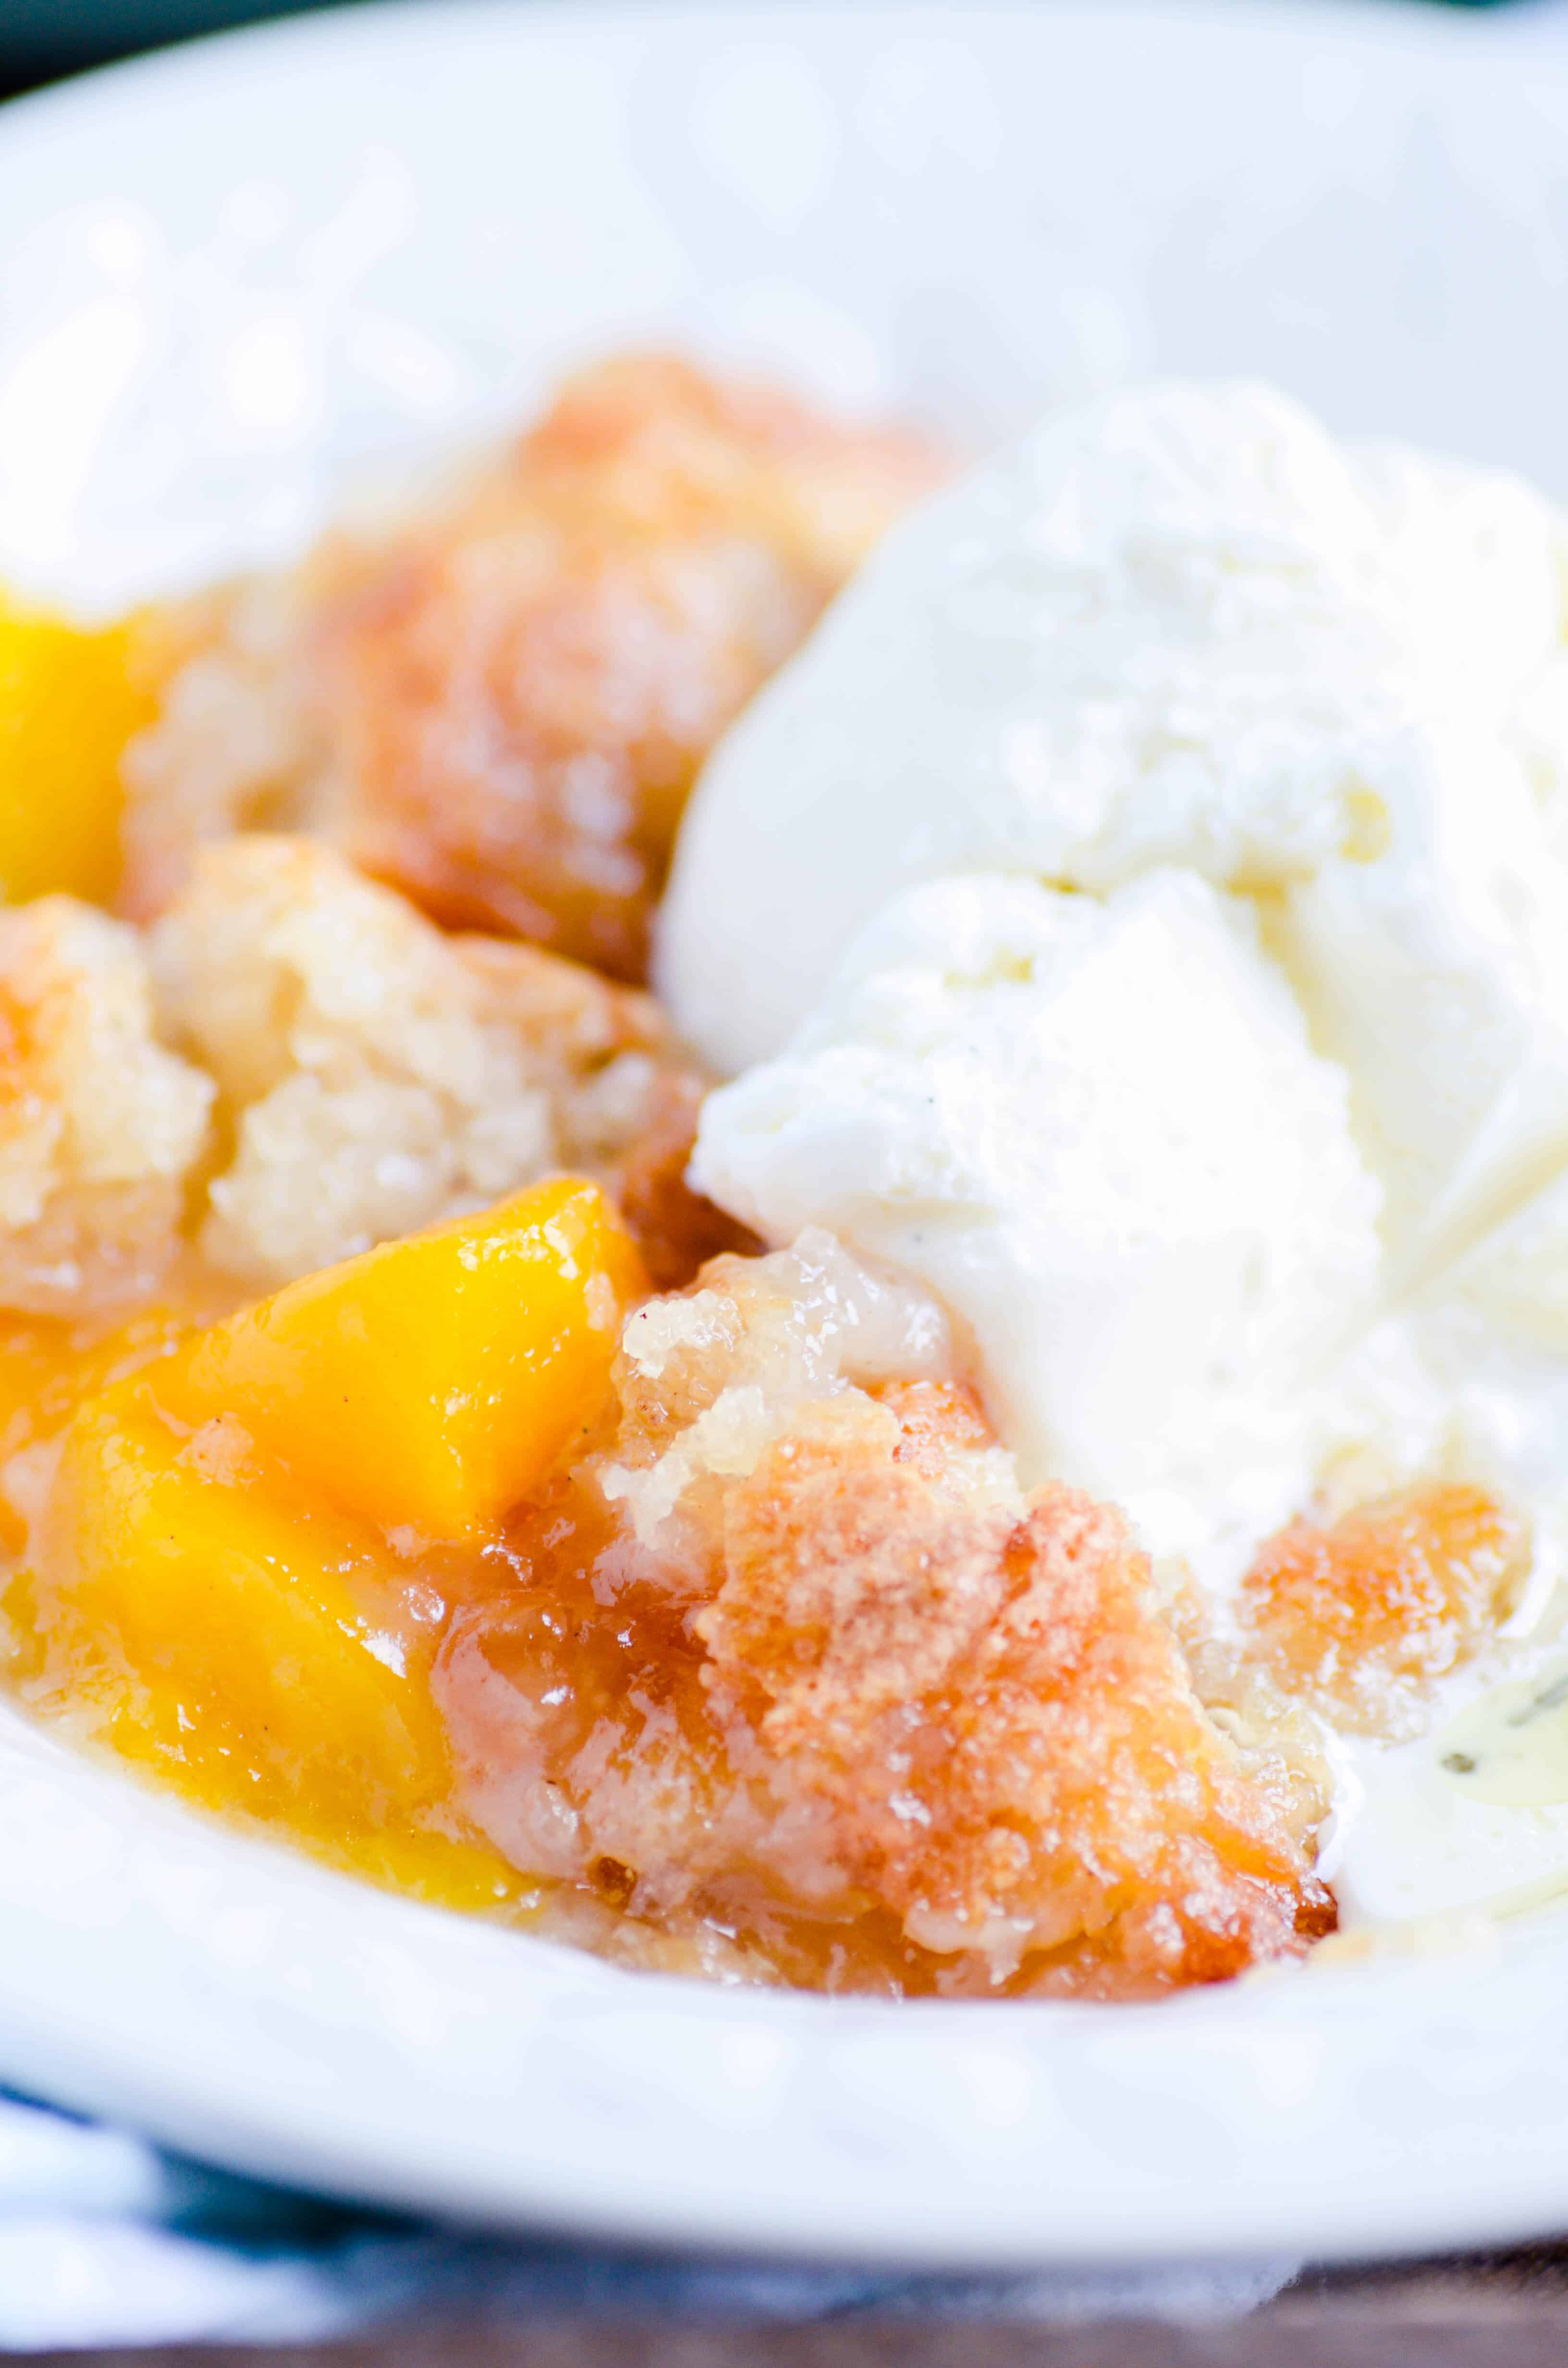 Quick and easy peach cobbler. The perfect recipe to stretch out those summer days a little bit longer!